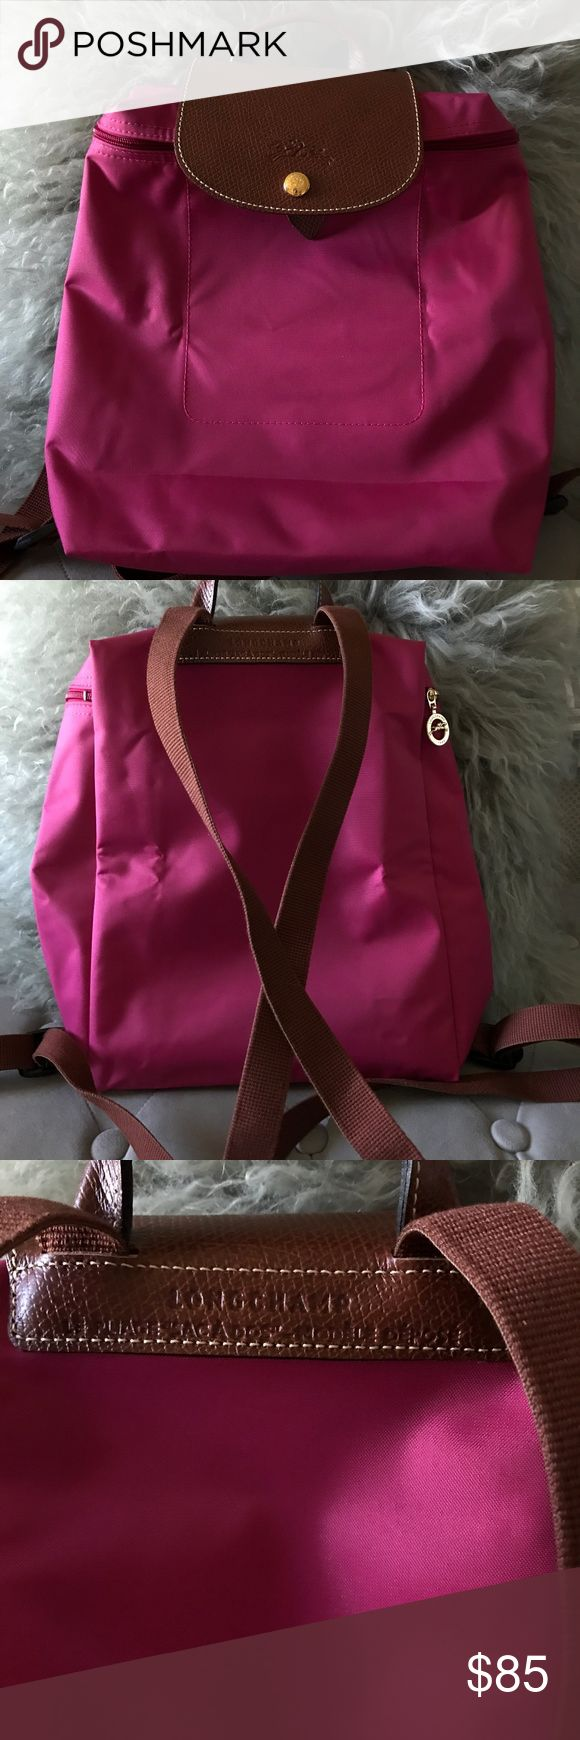 """Longchamp Le Pliage Zippered Backpack """"Pink"""" Like new, excellent condition.  Only used once. Have tags.  Color is """"Pink"""" from Fall 2016.   This backpack with a snap-fastening button flap plays with all the codes of the Le Pliage bag, the emblematic Longchamp model.  LE PLIAGE is light as a feather, folds away to the size of a paperback, and is durable enough to keep all your essentials close at hand. Longchamp Bags Backpacks"""